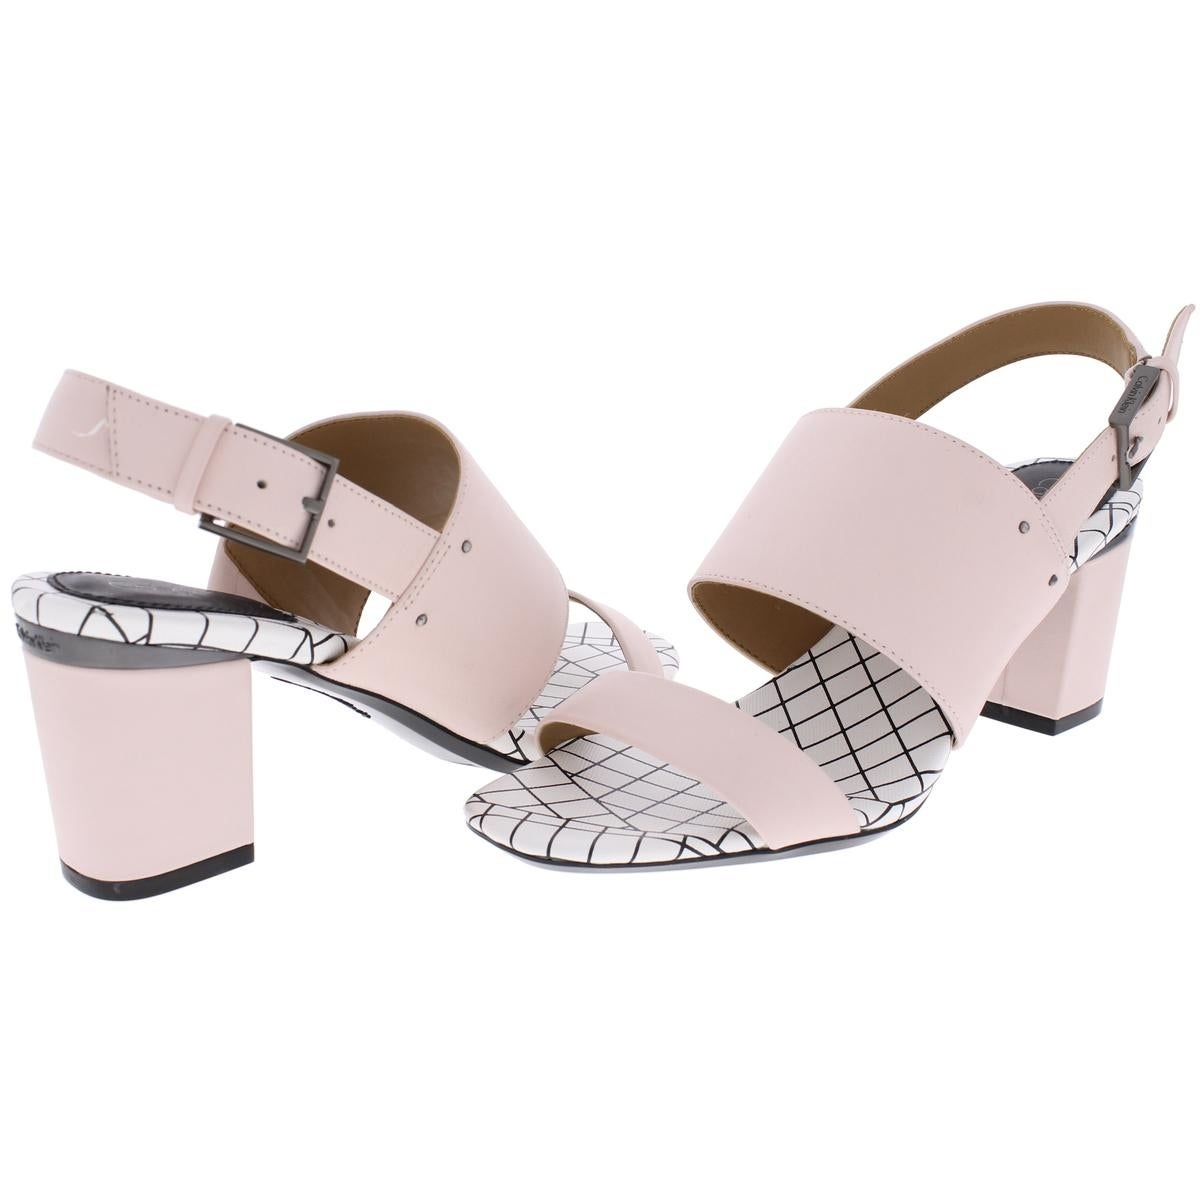 7e74782a236e Shop Calvin Klein Womens Corina Dress Sandals Leather Open Toe - Free  Shipping On Orders Over  45 - Overstock - 21027929